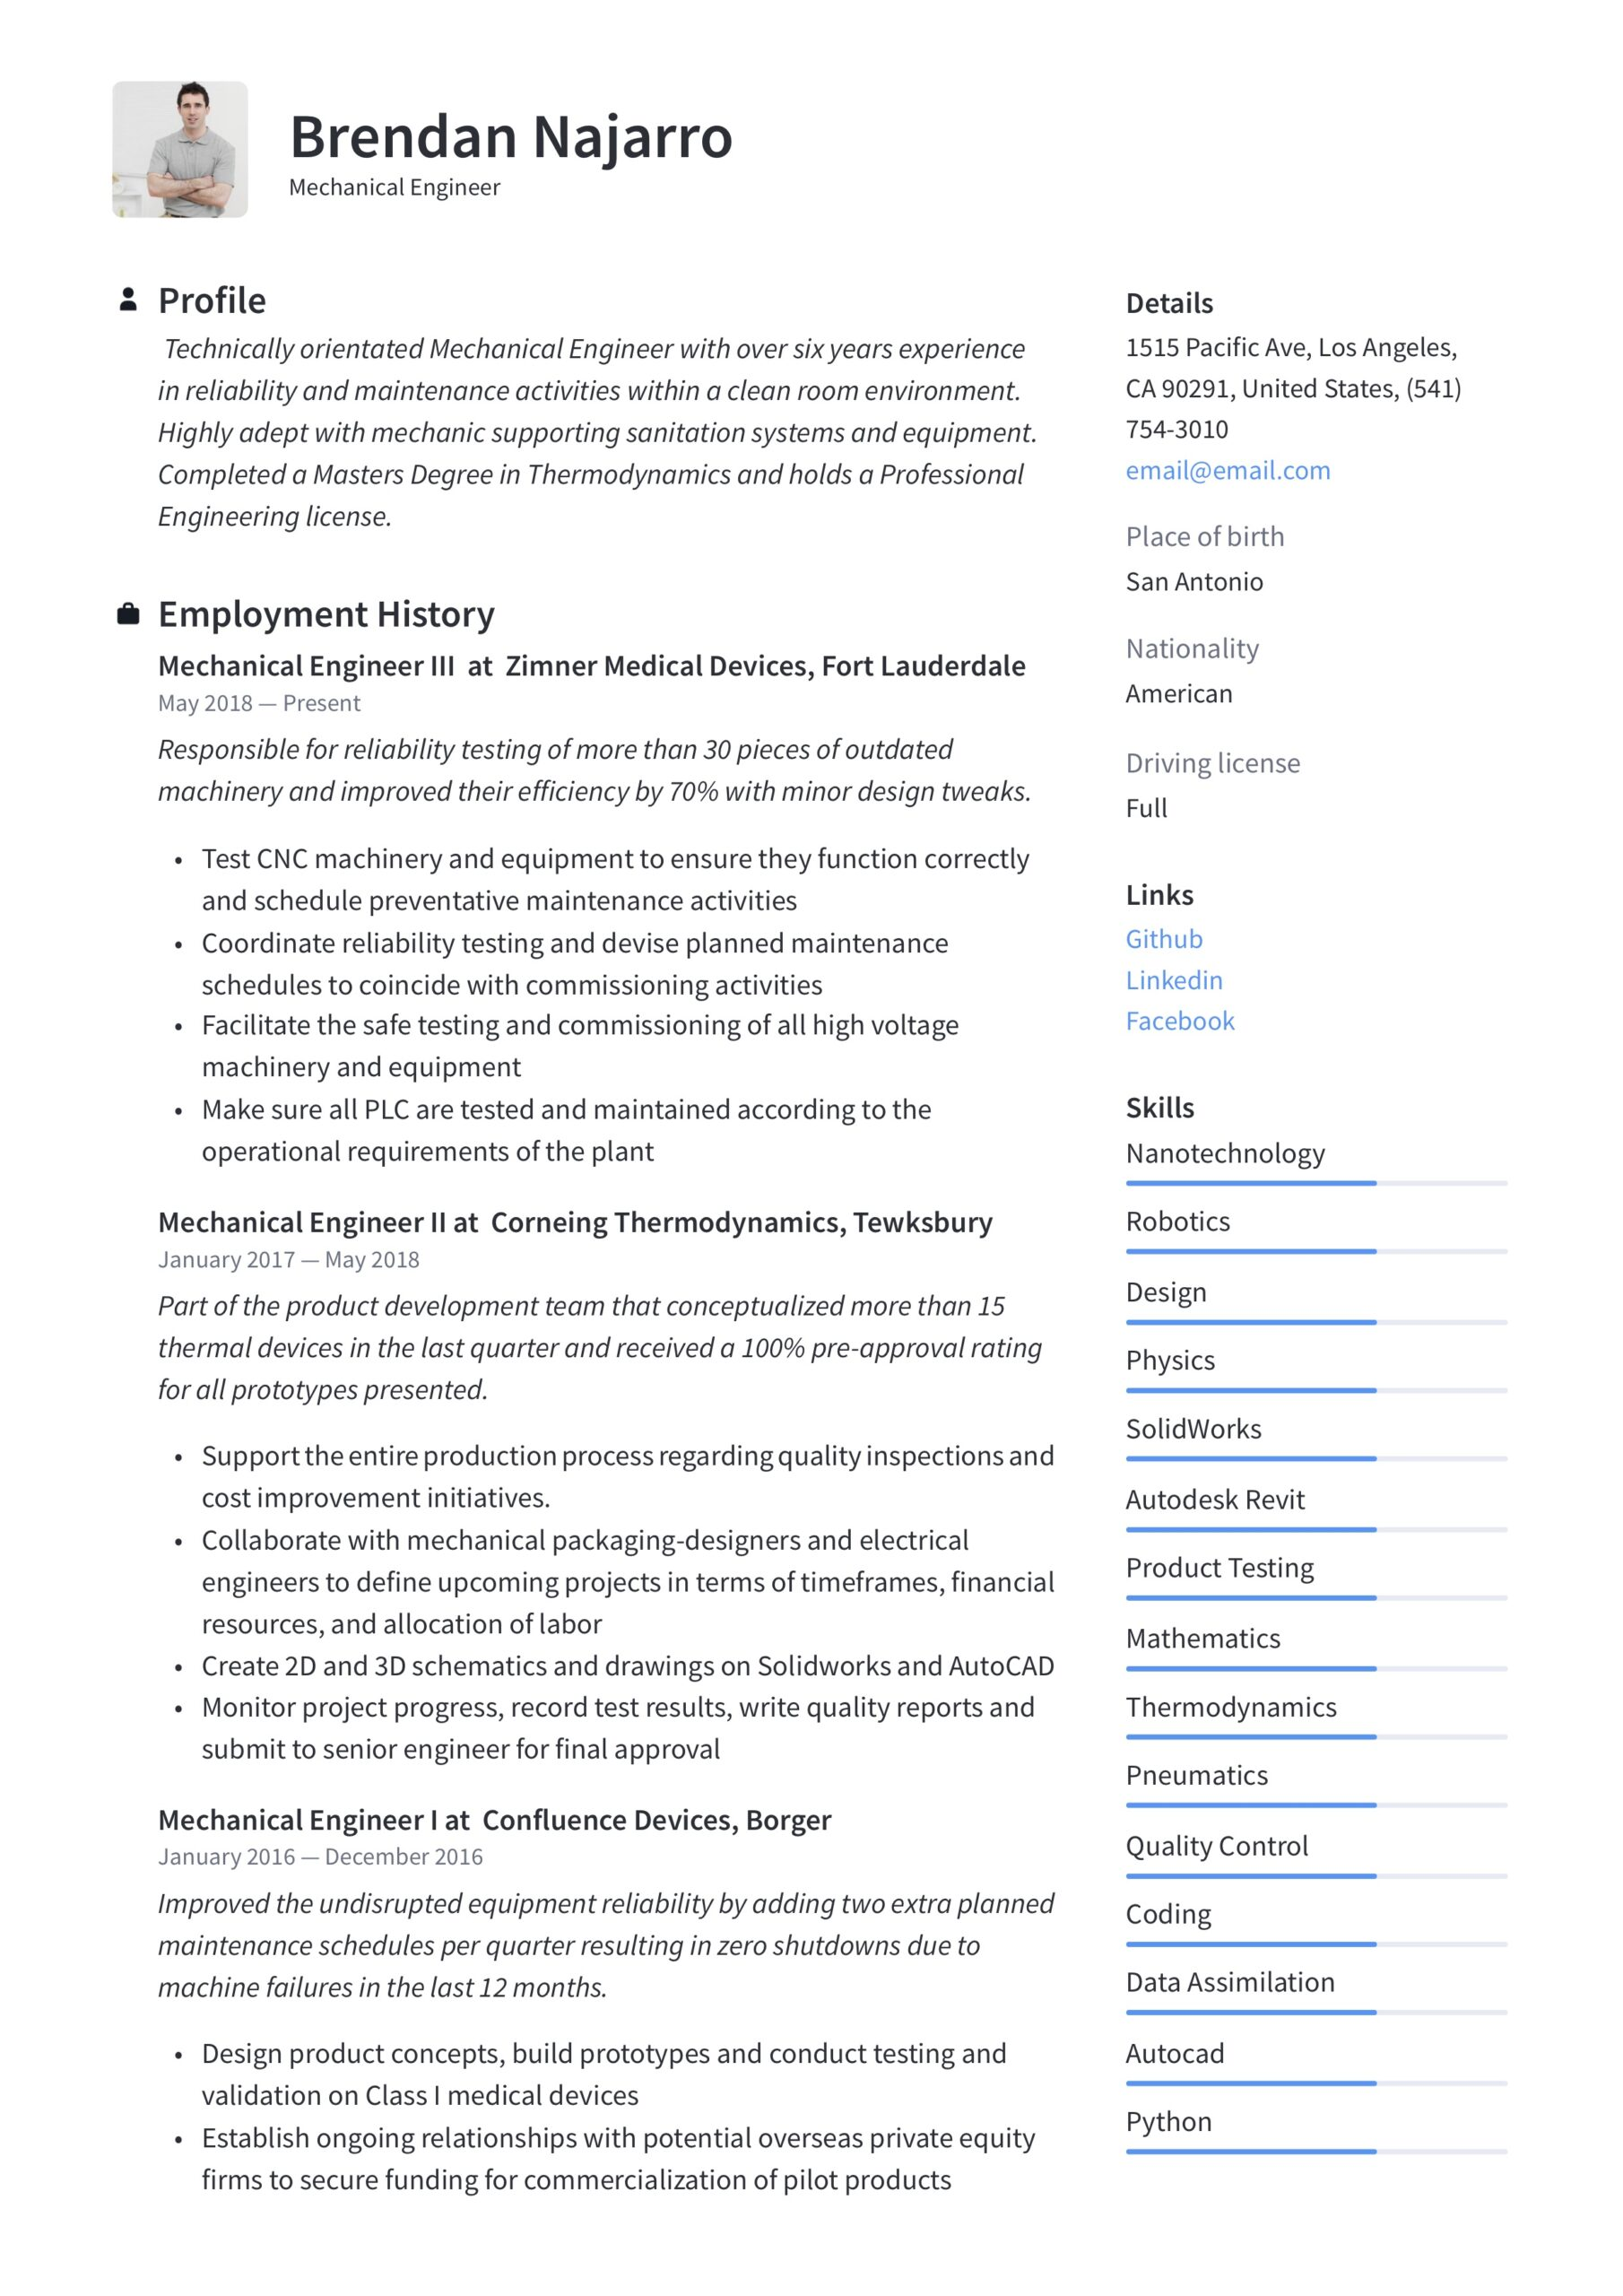 mechanical engineer resume writing guide templates pdf electrical testing and Resume Electrical Testing And Commissioning Engineer Resume